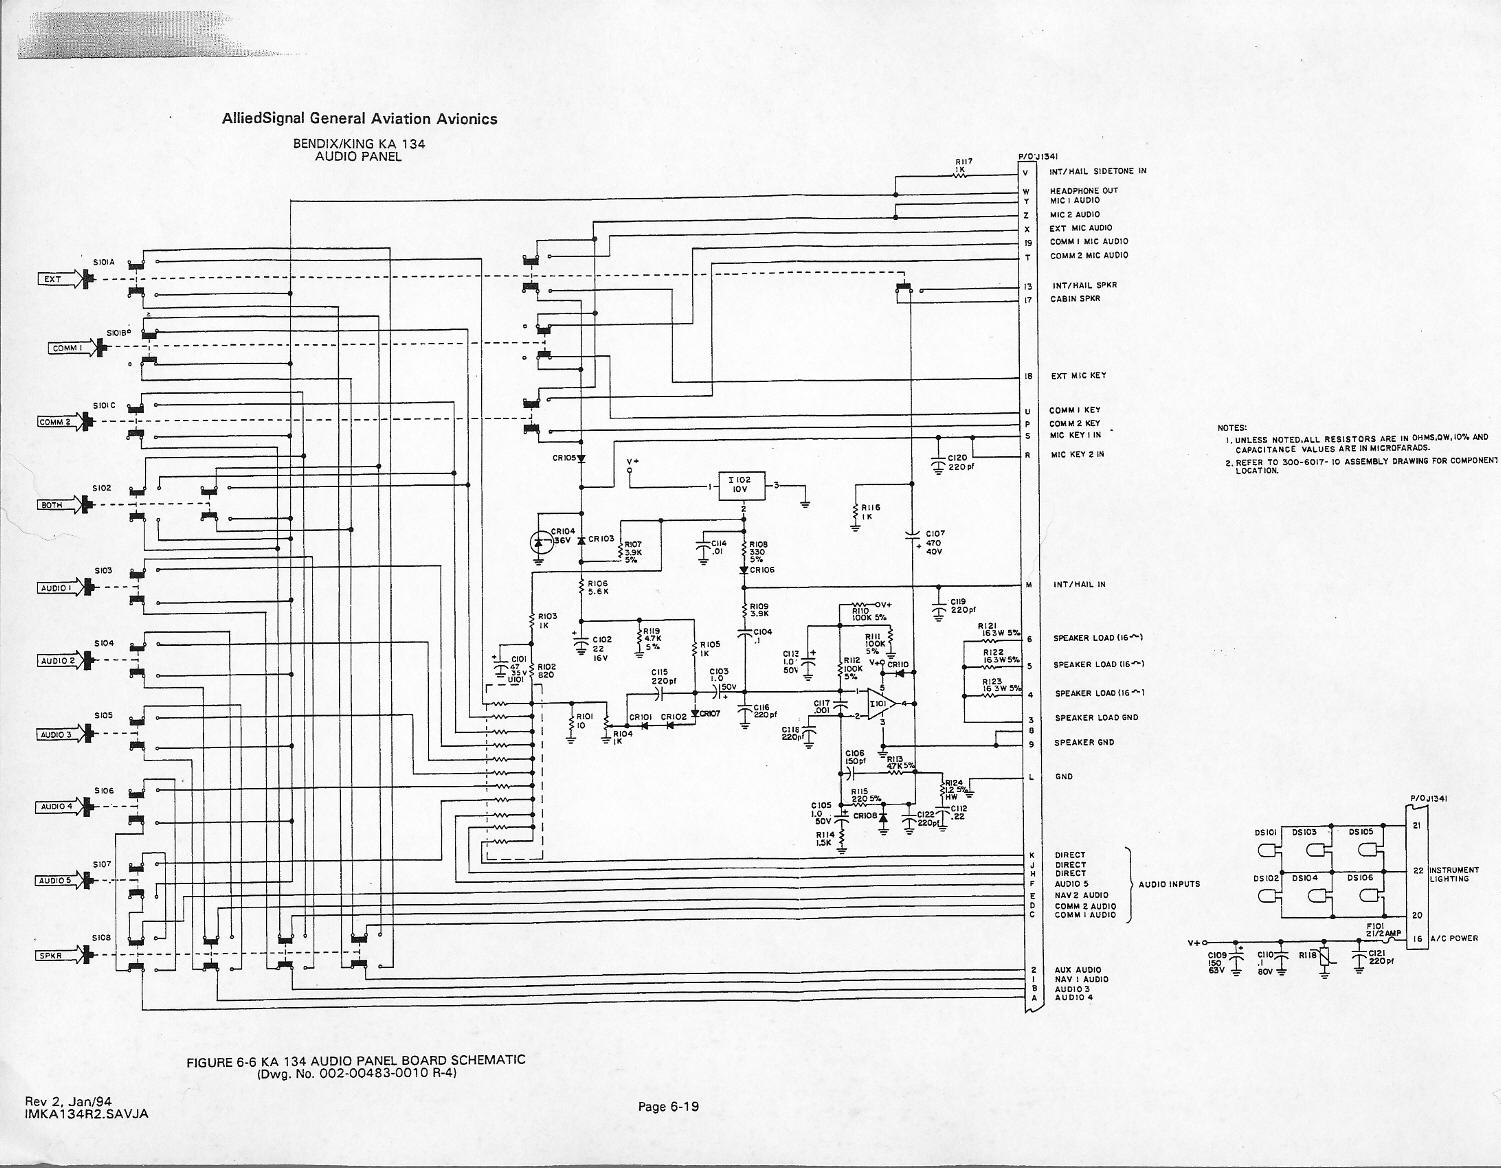 ka134_r4 first flight prep king ka 134 audio panel wiring diagram at soozxer.org